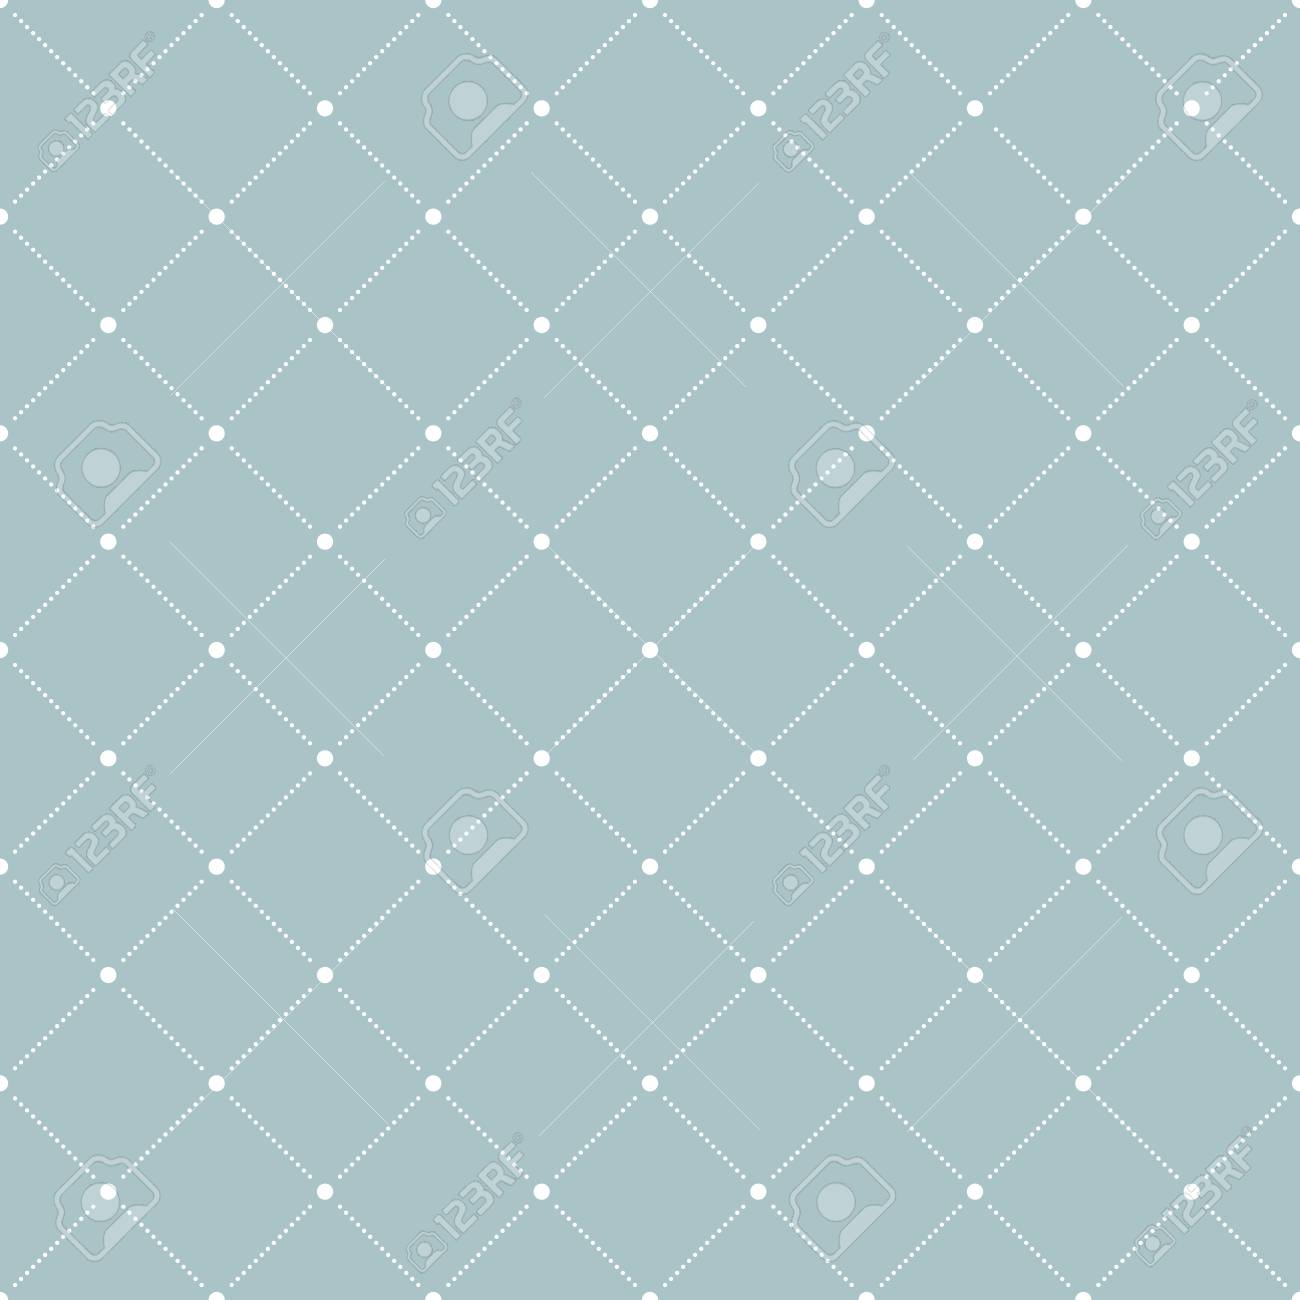 Geometric Fine Abstract Vector Pattern Seamless Modern Texture For Wallpapers And Backgrounds Blue